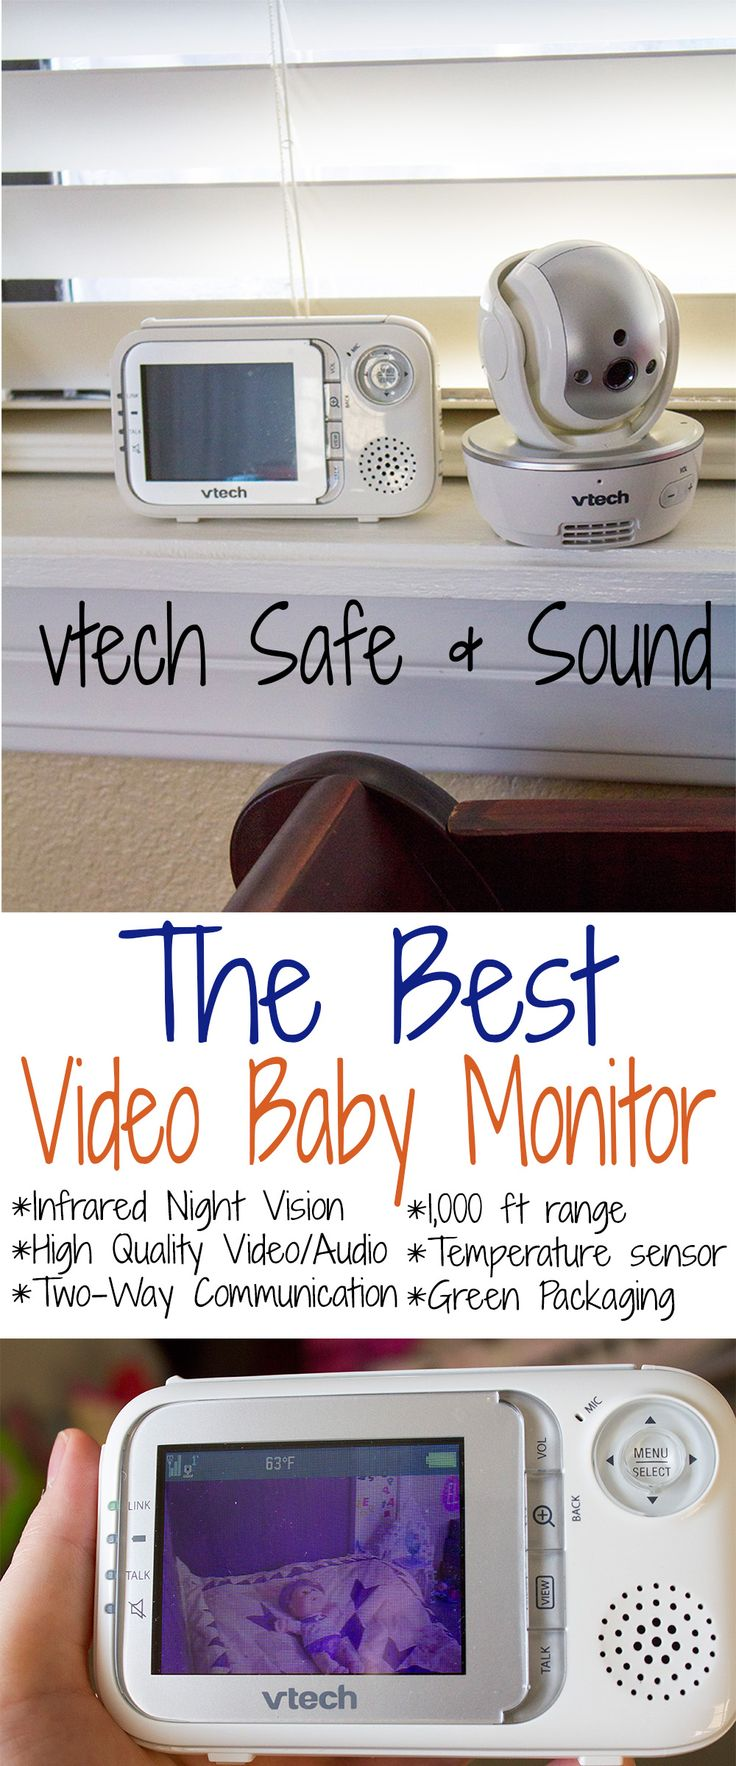 the best baby monitor vtech safe sound full color video high quality audio pan tilt and. Black Bedroom Furniture Sets. Home Design Ideas